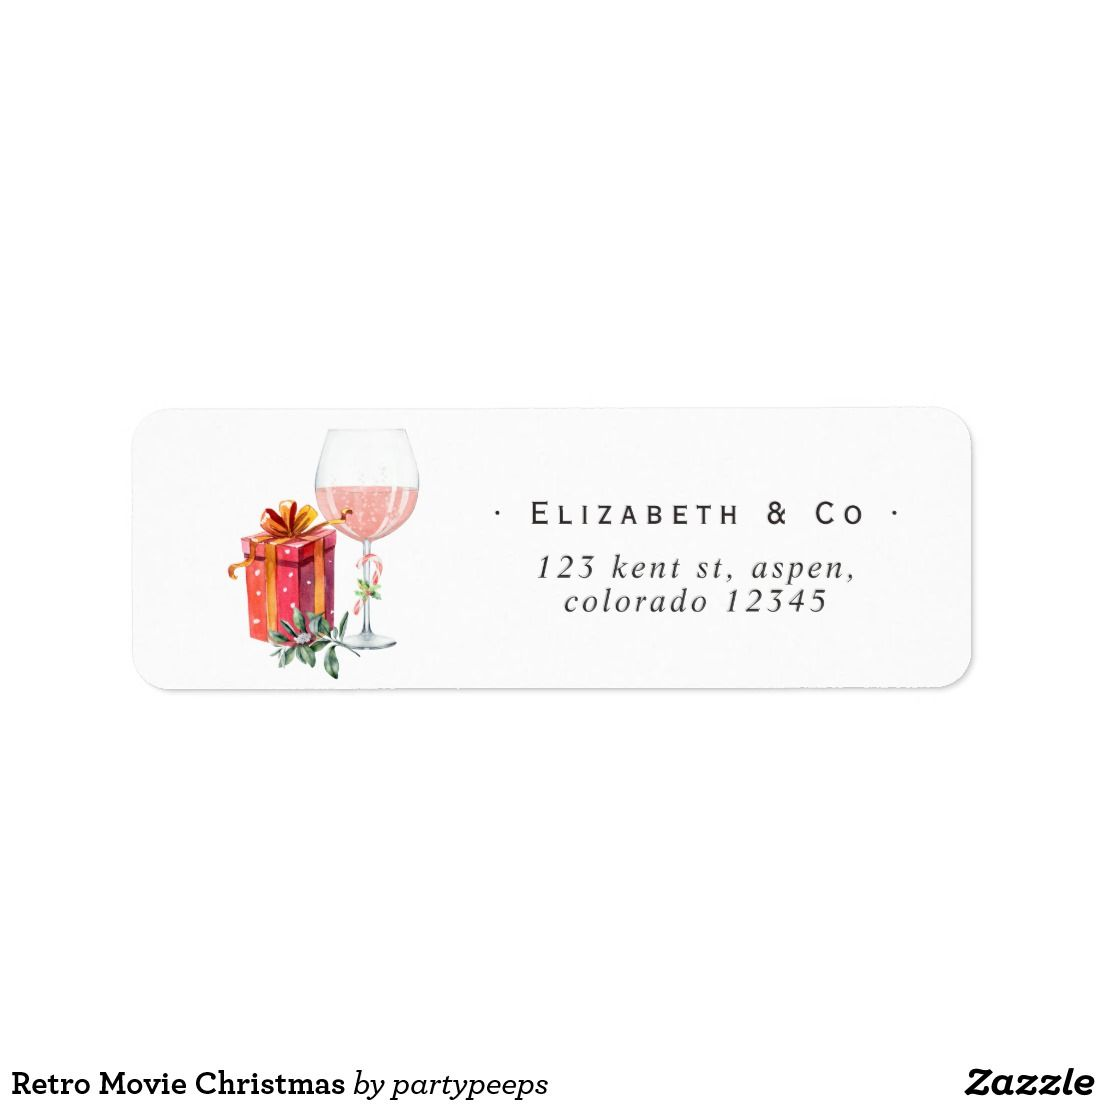 Retro Movie Christmas Label in 2018 | Christmas at Tiffany ...